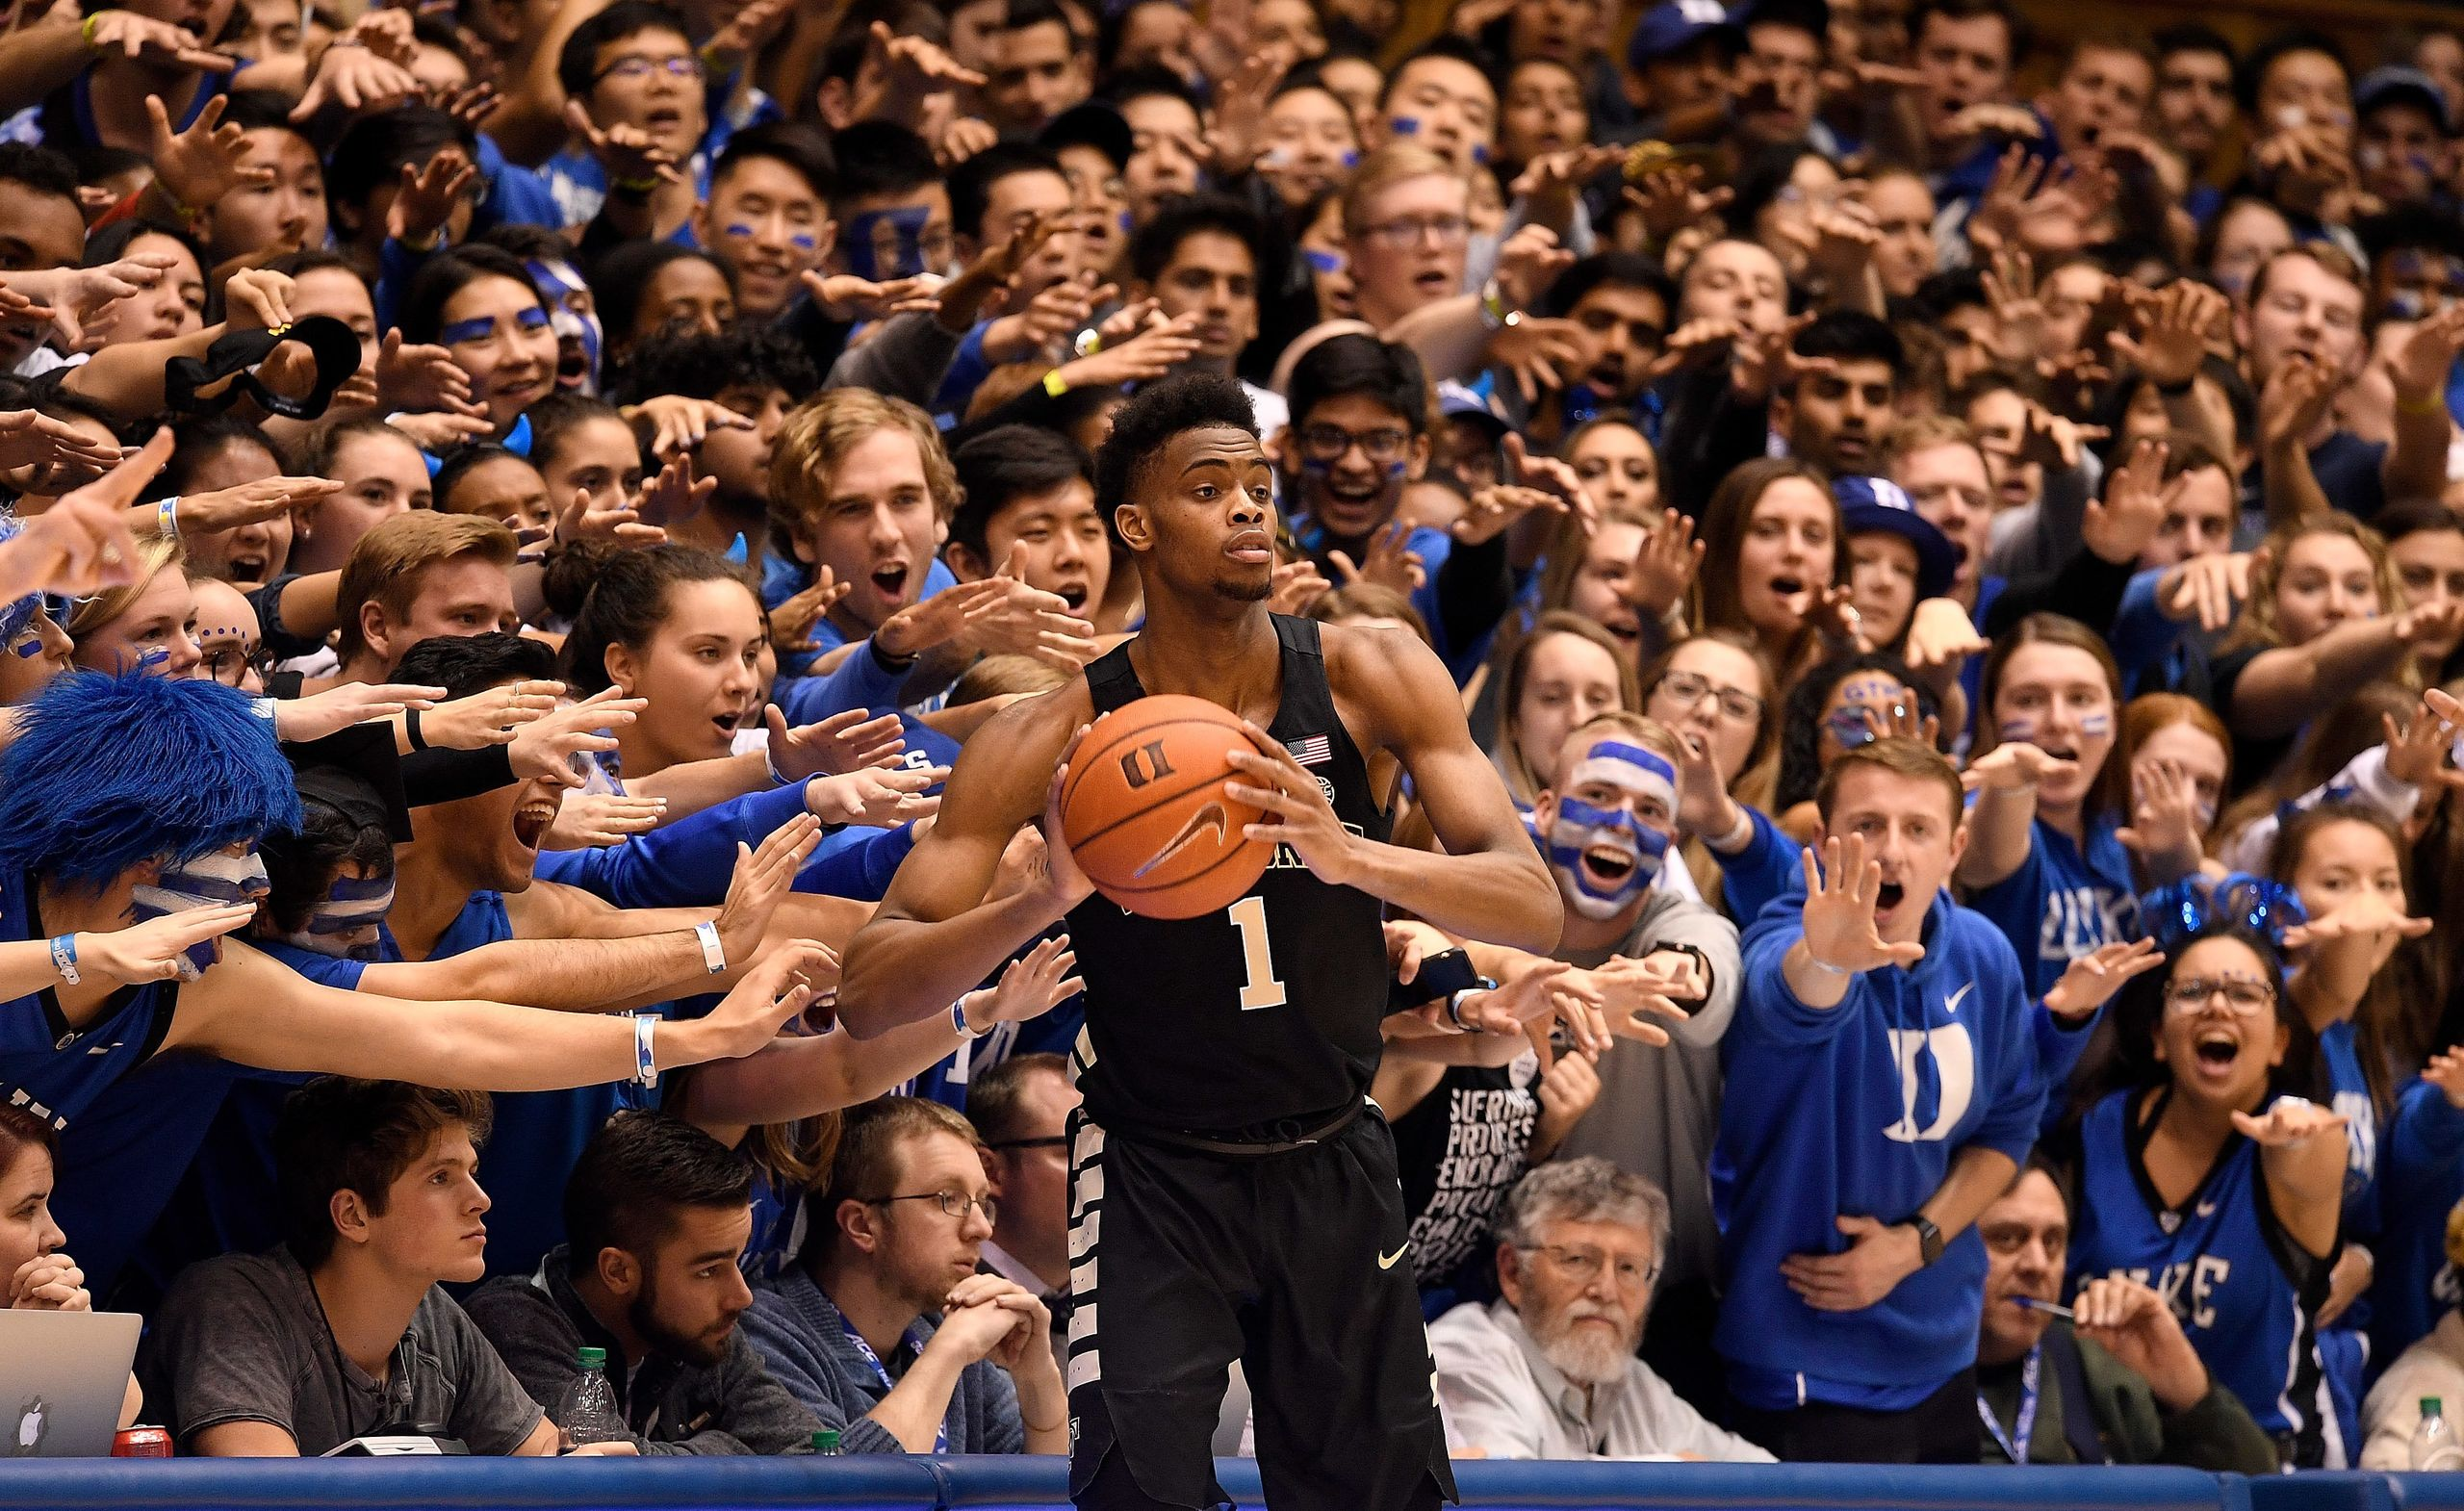 The Cameron Crazies taunt Isaiah Mucius #1 of the Wake Forest Demon Deacons during the second half of their game against the